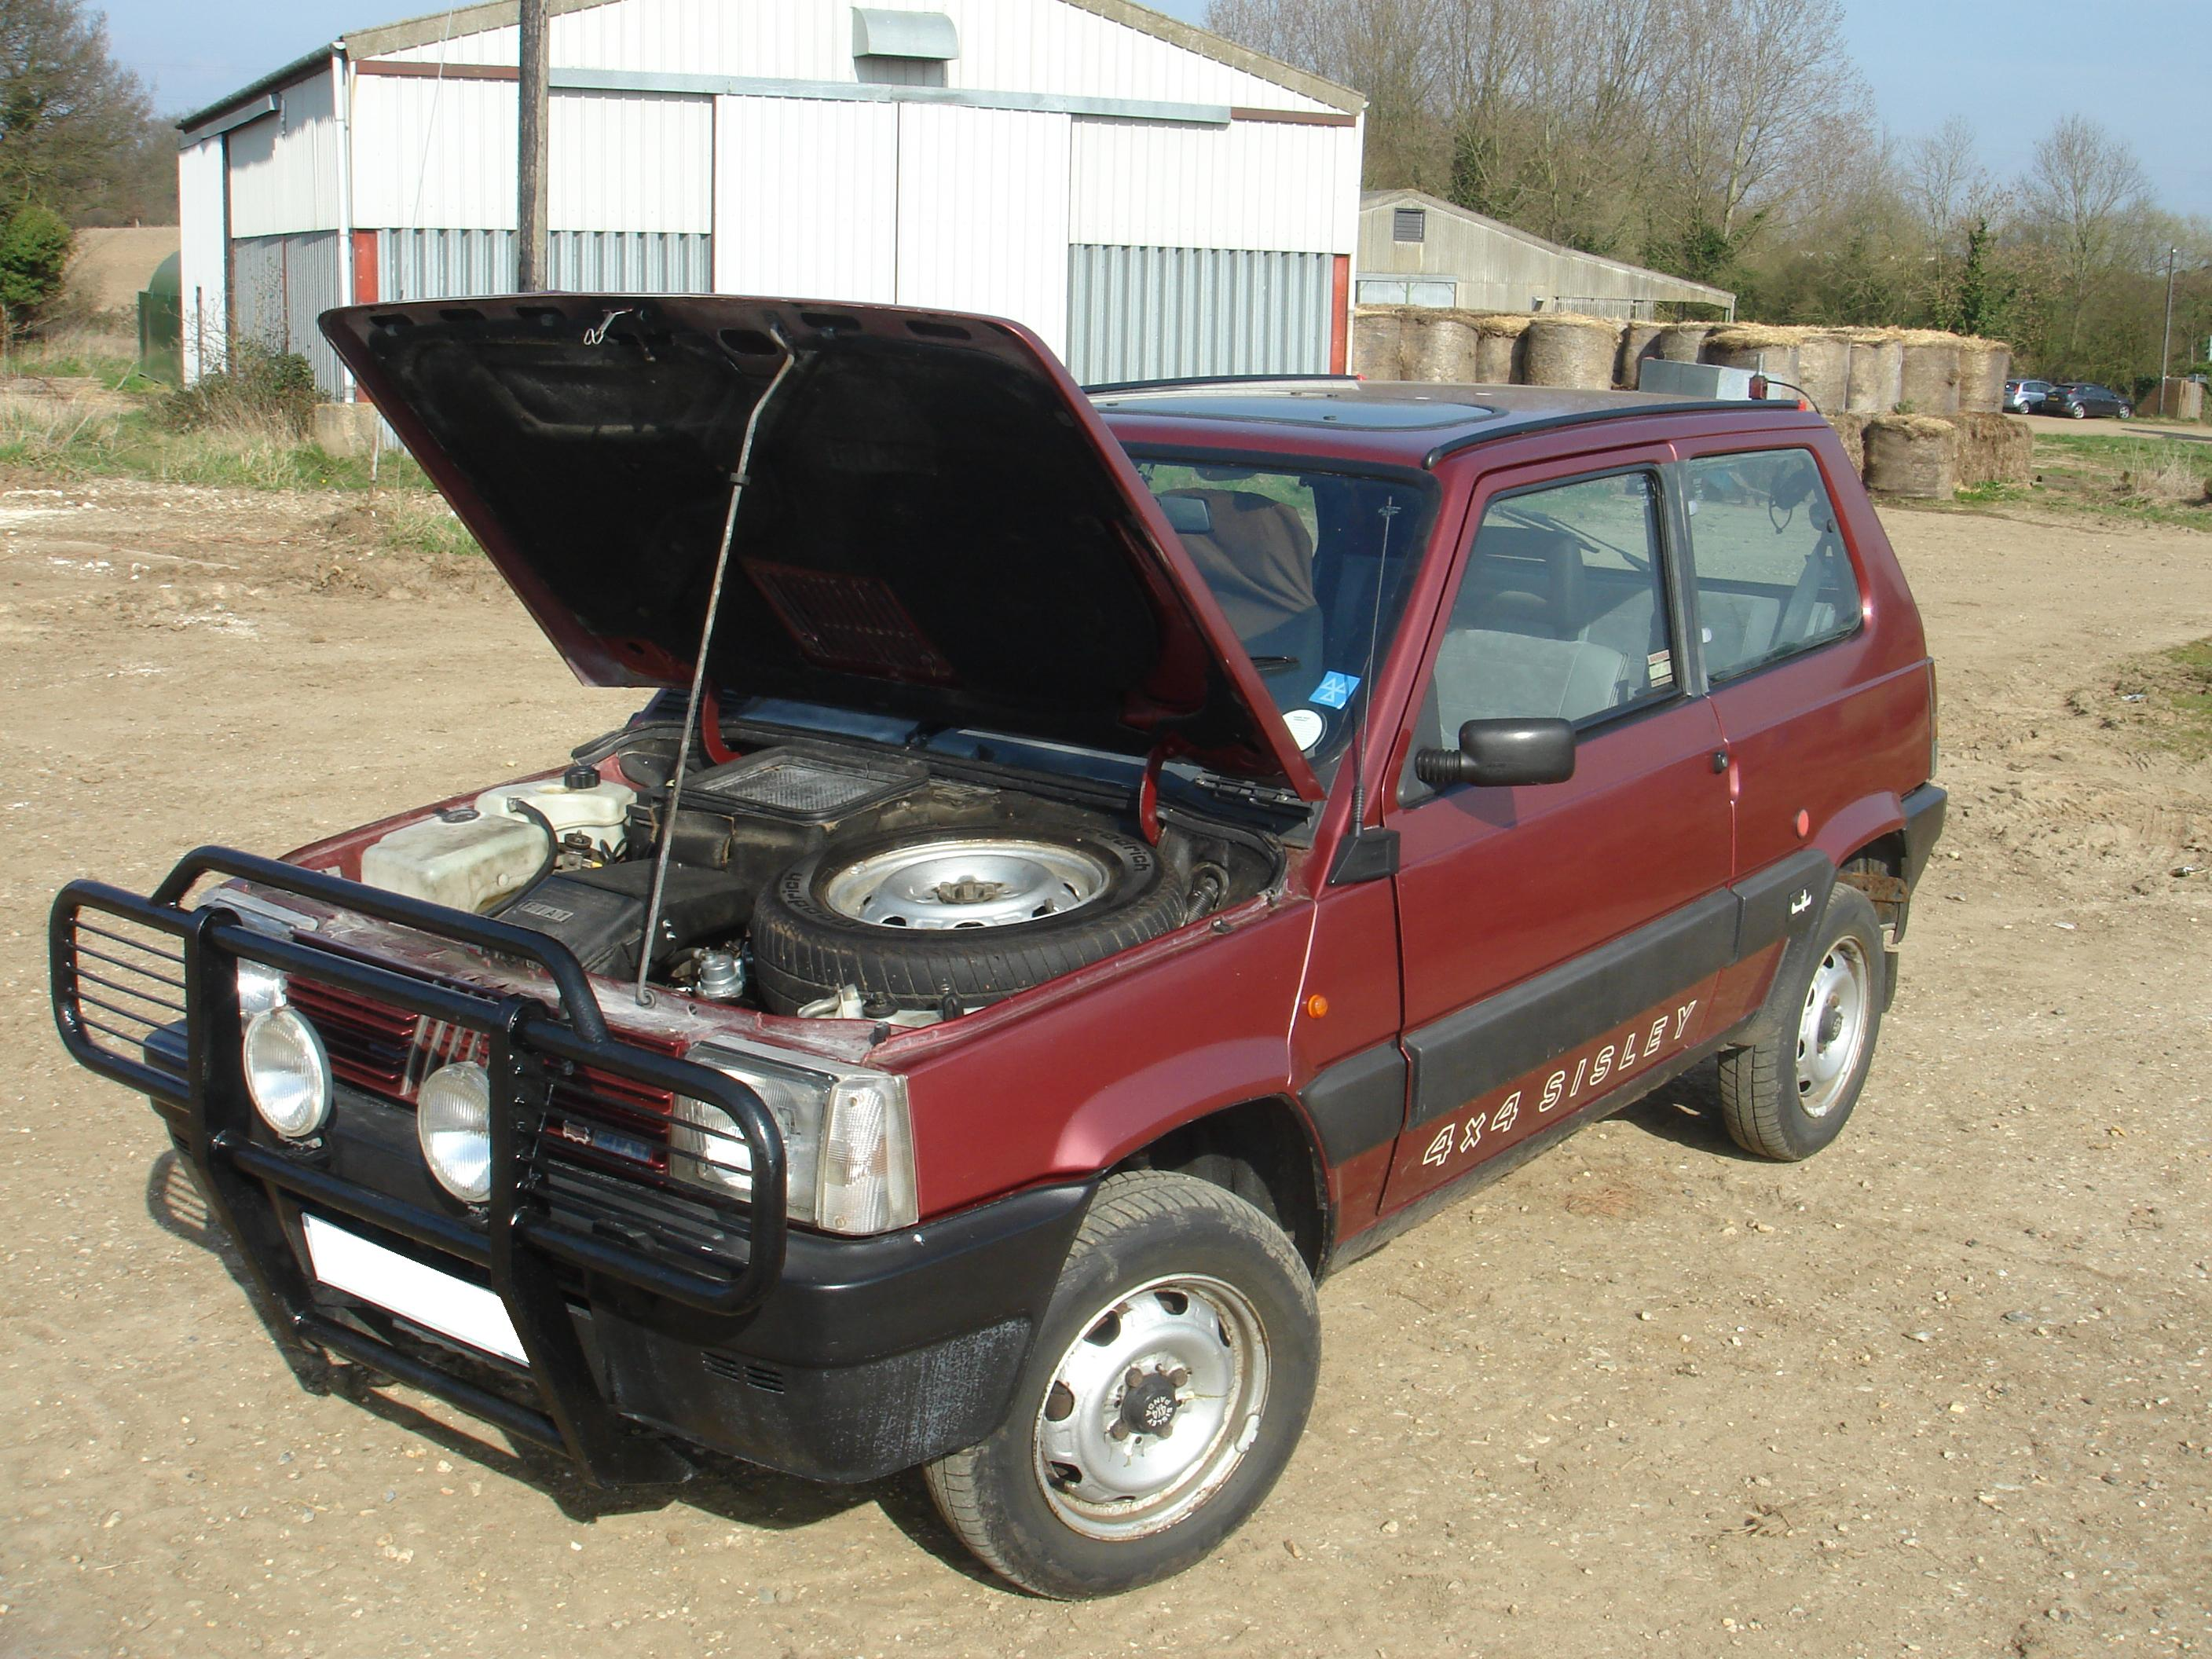 Technical the newest sisley 4x4 in the fleet the fiat forum for Fiat panda 4x4 sisley usata